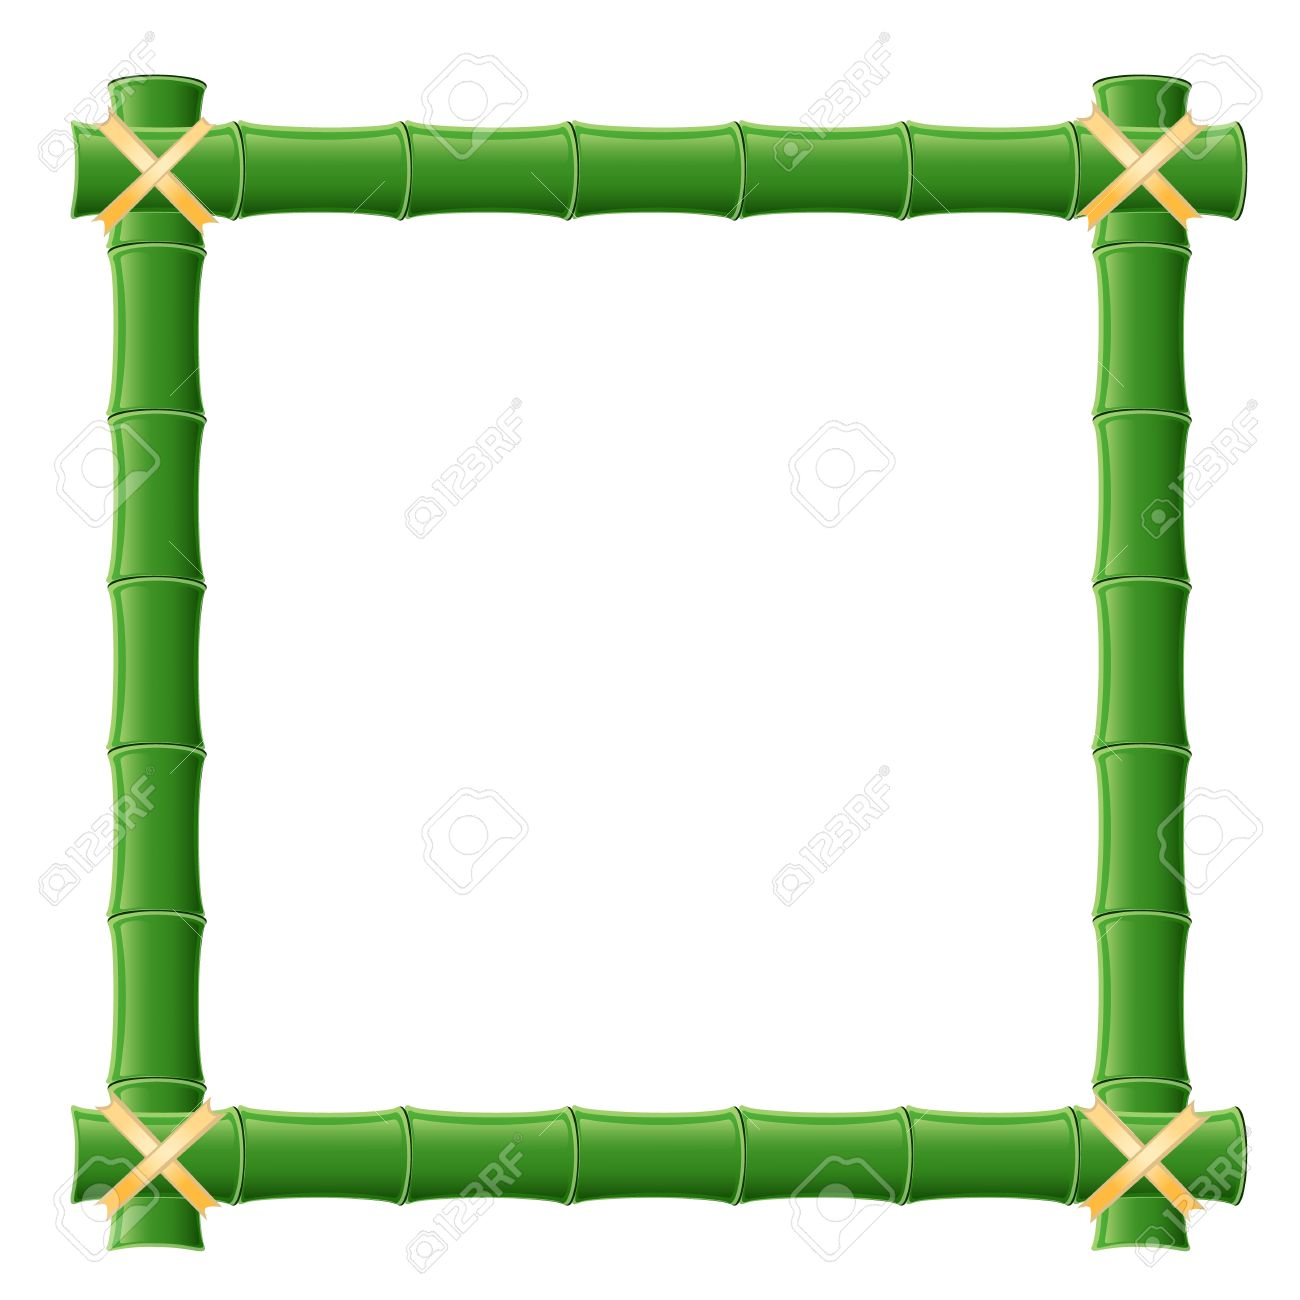 Bamboo Frame Royalty Free Cliparts, Vectors, And Stock.